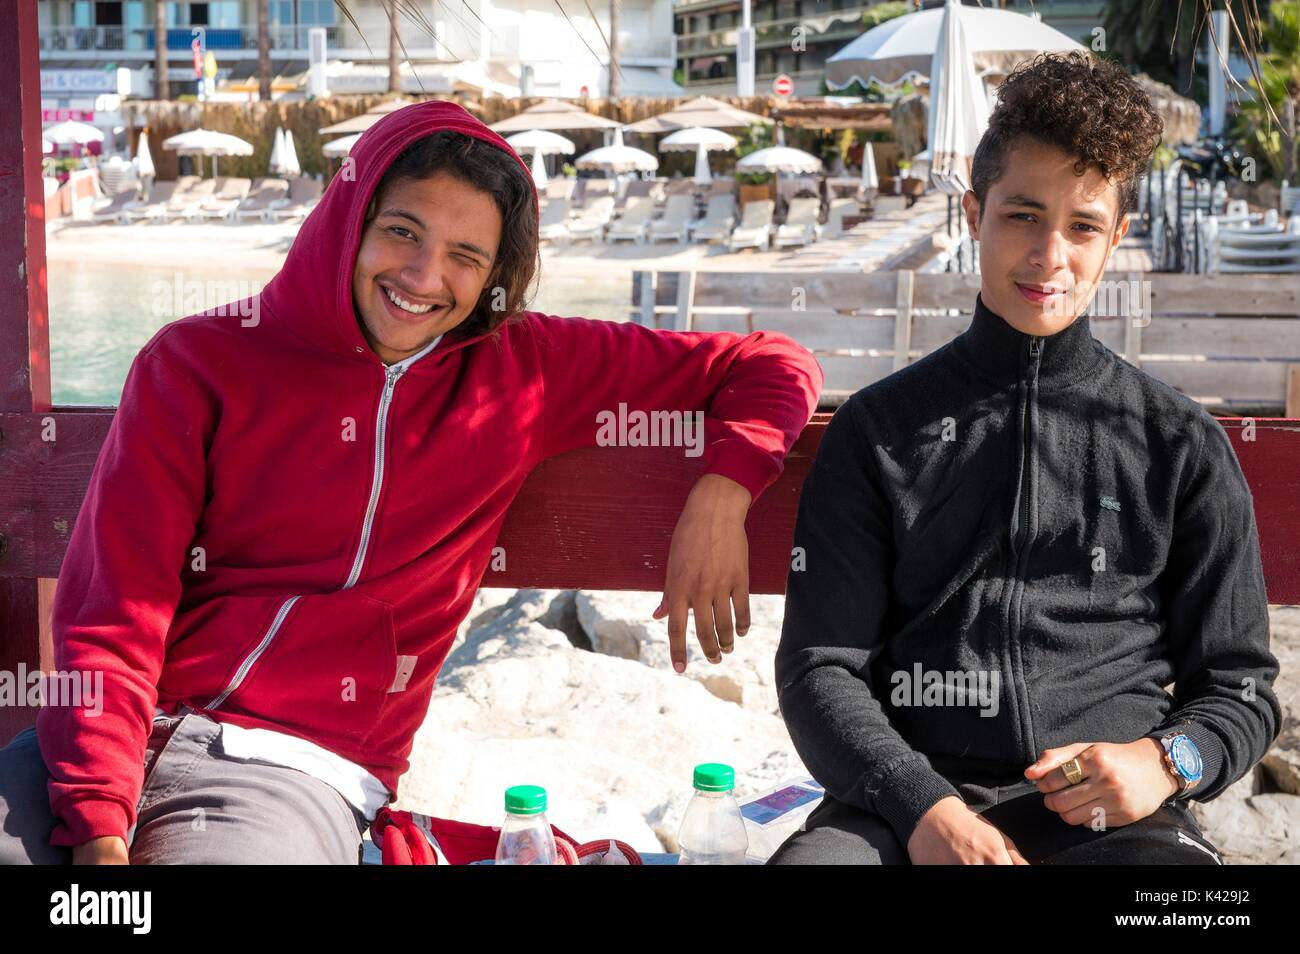 two-young-french-men-of-algerian-descent-pose-for-a-picture-in-juan-K429J2.jpg